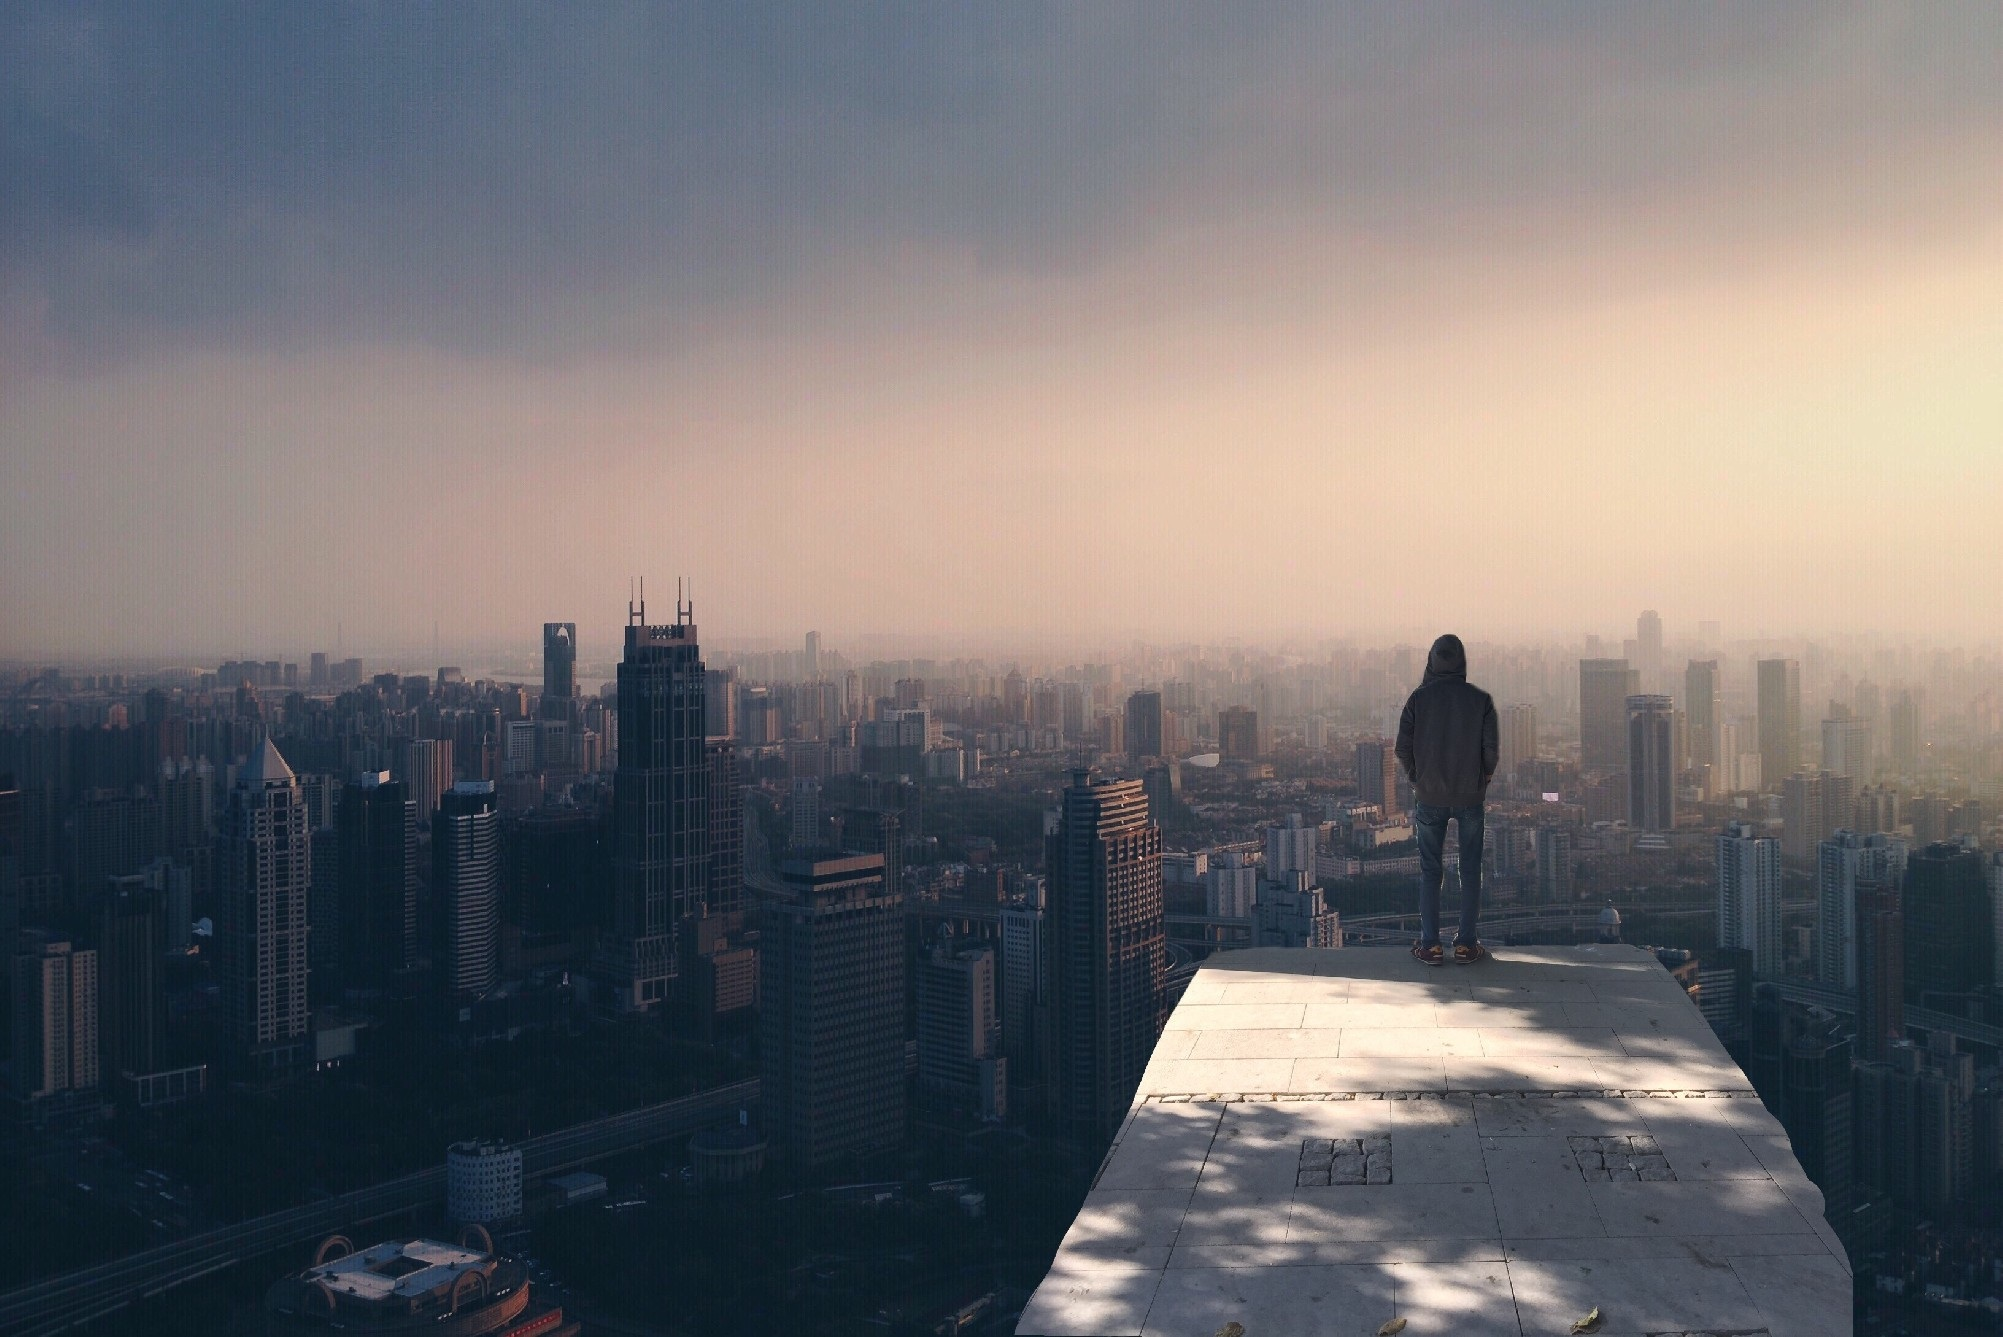 Free stock photo of city, man, person, weather